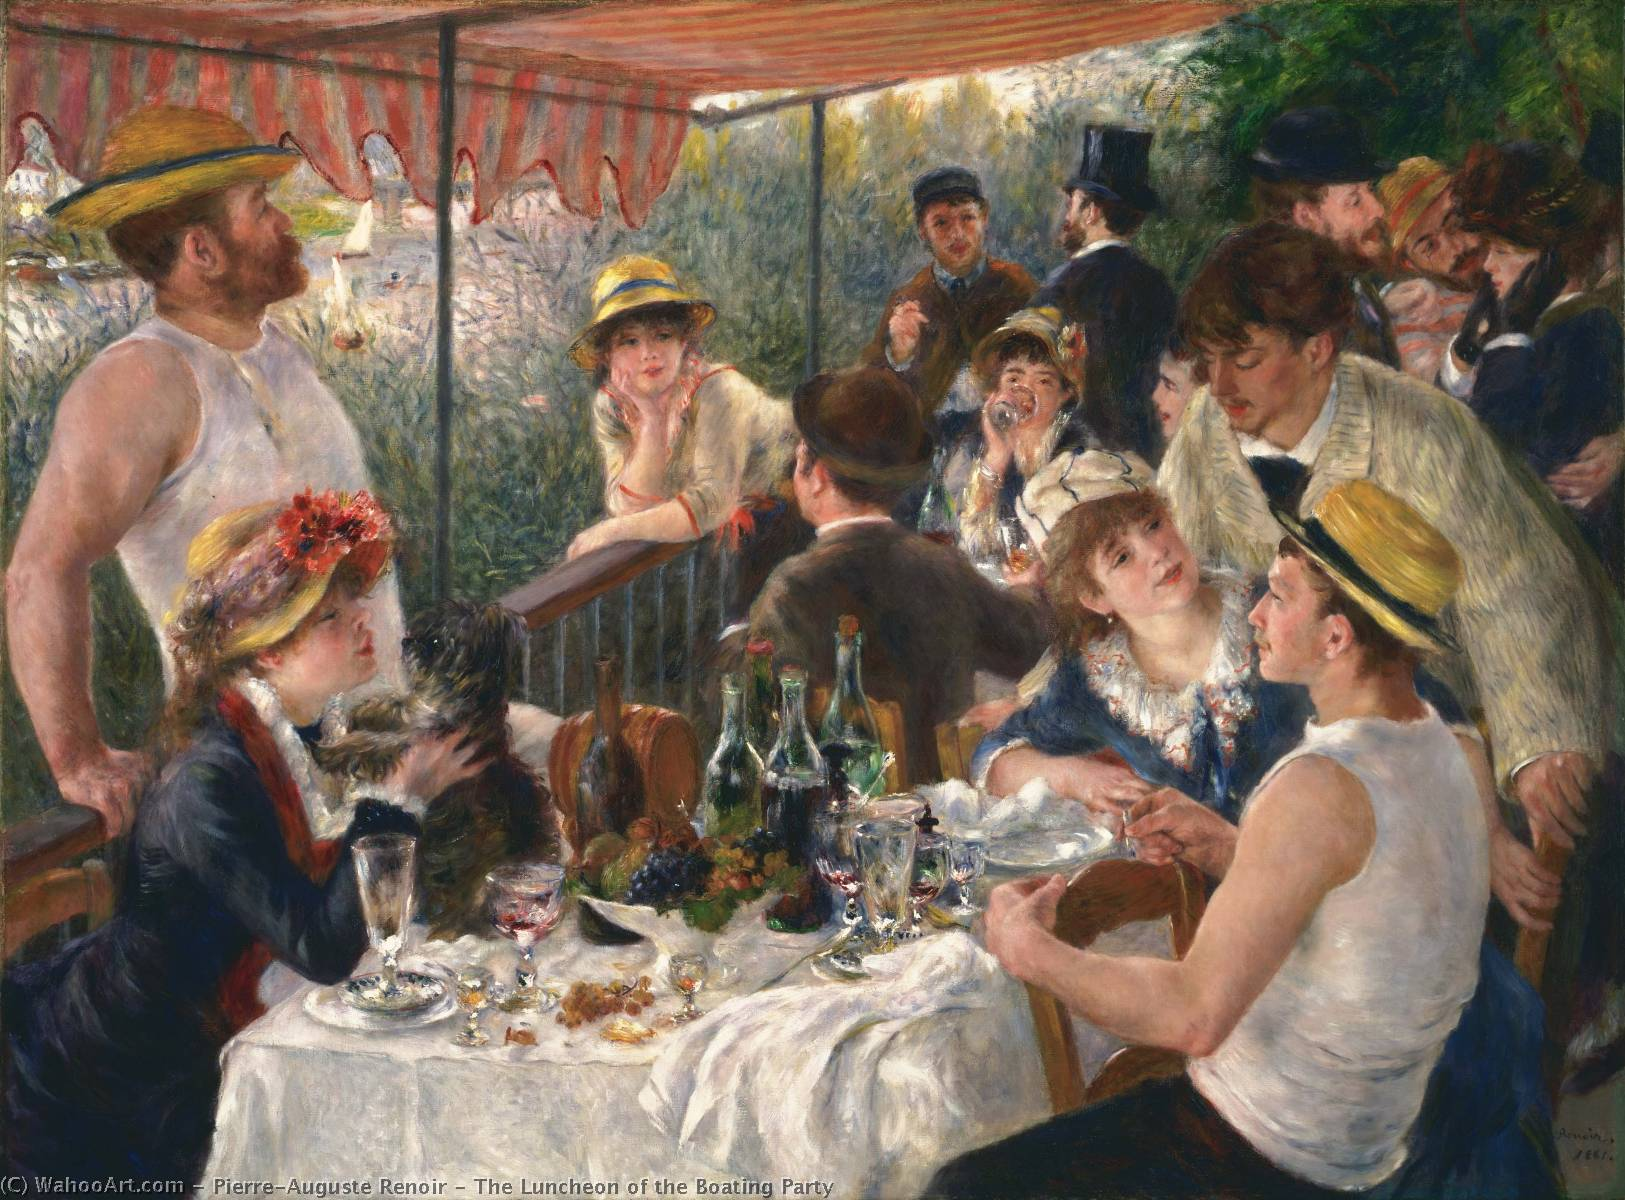 The Luncheon of the Boating Party, Oil On Canvas by Pierre-Auguste Renoir (1841-1919, France)